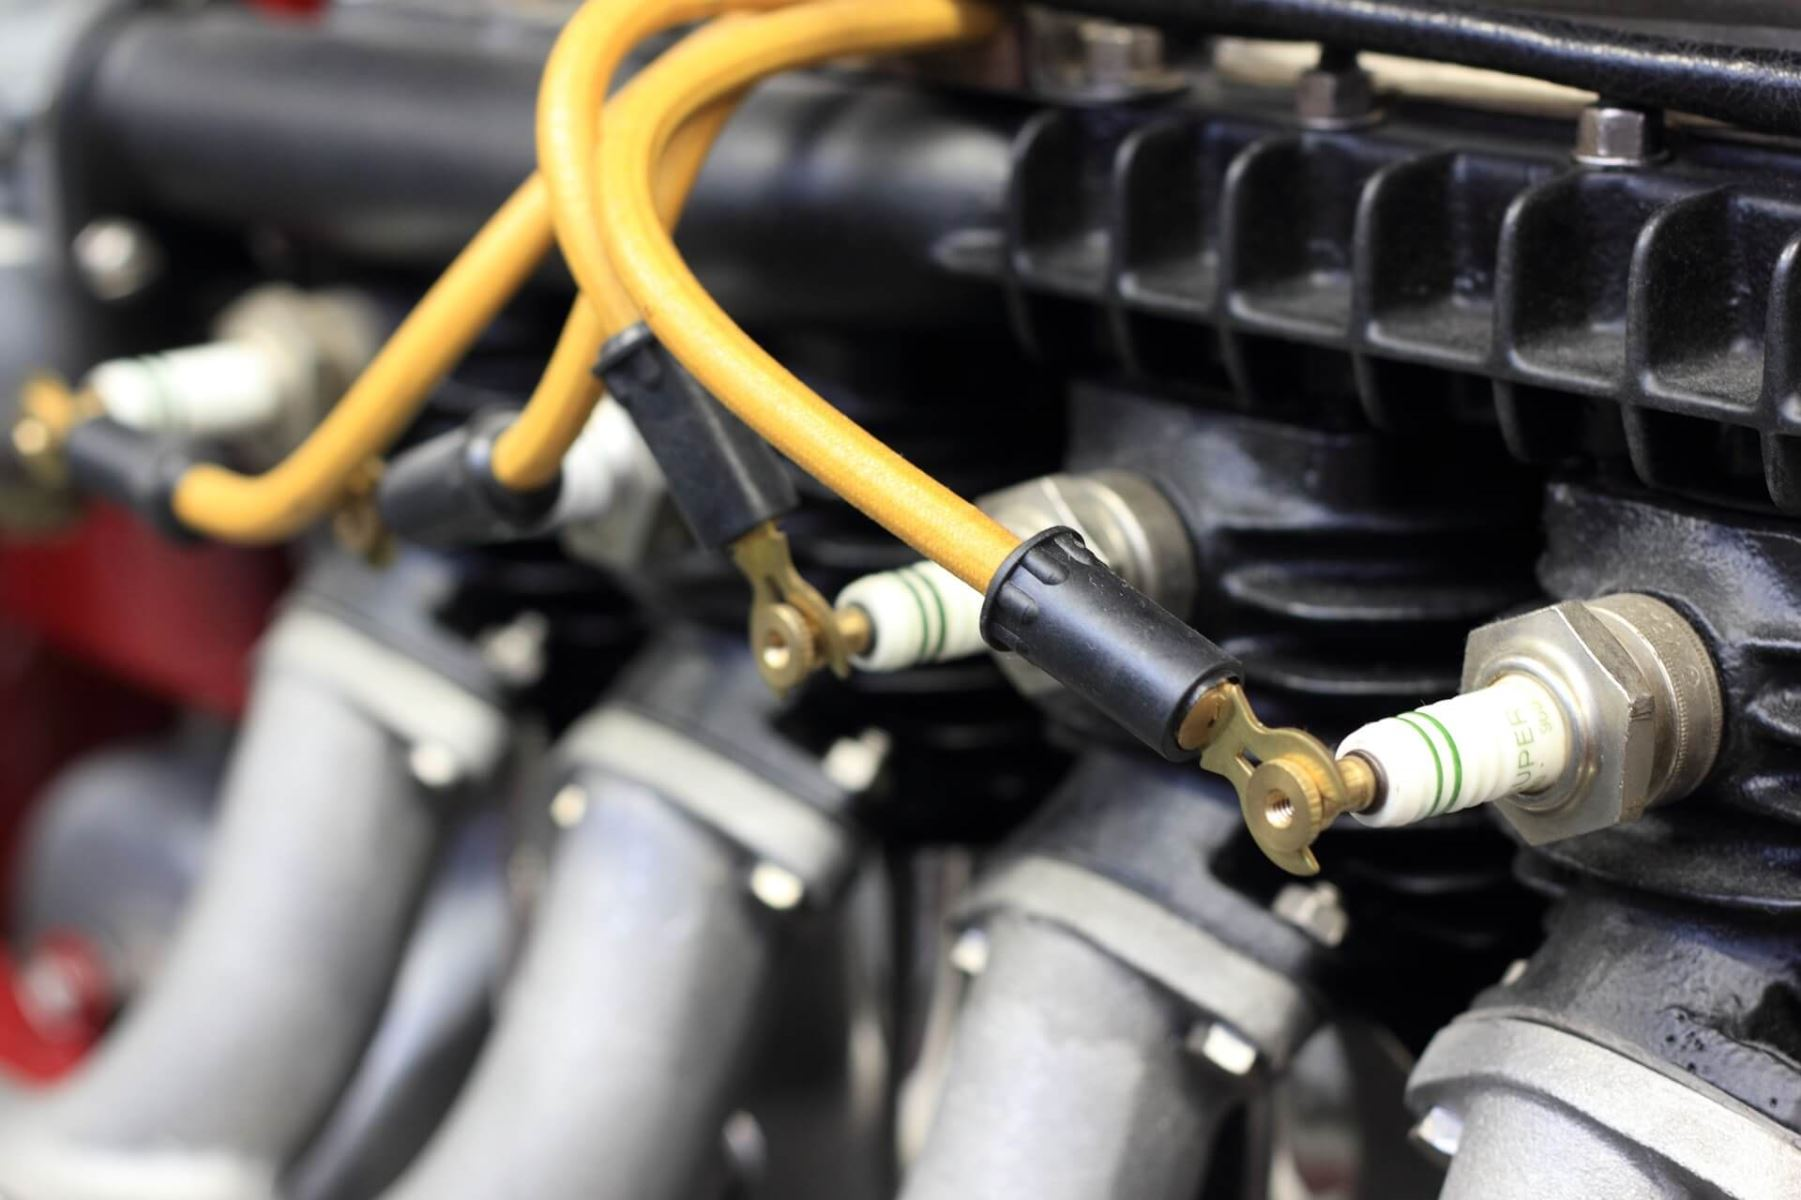 spark plug conversion chart ford f250 front axle diagram tips and info for maximum engine performance